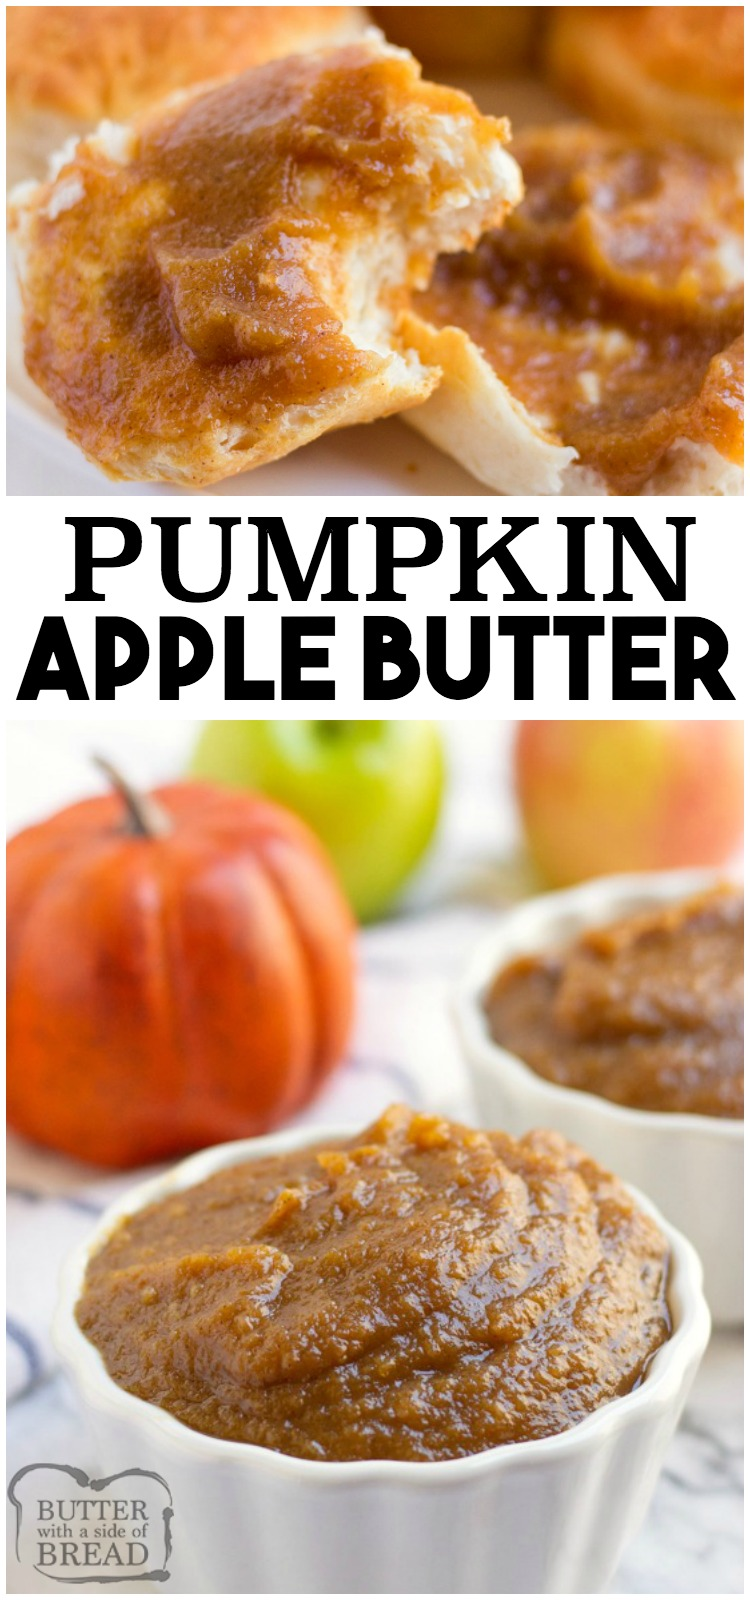 Crockpot Pumpkin Apple Butter recipe made with fresh apples, pumpkin puree and a blend of heavenly fall spices. Cooked slow to allow for a buttery smooth consistency and an incredible flavor! #apple #pumpkin #recipe #butter #crockpot #slowcooker recipe from BUTTER WITH A SIDE OF BREAD